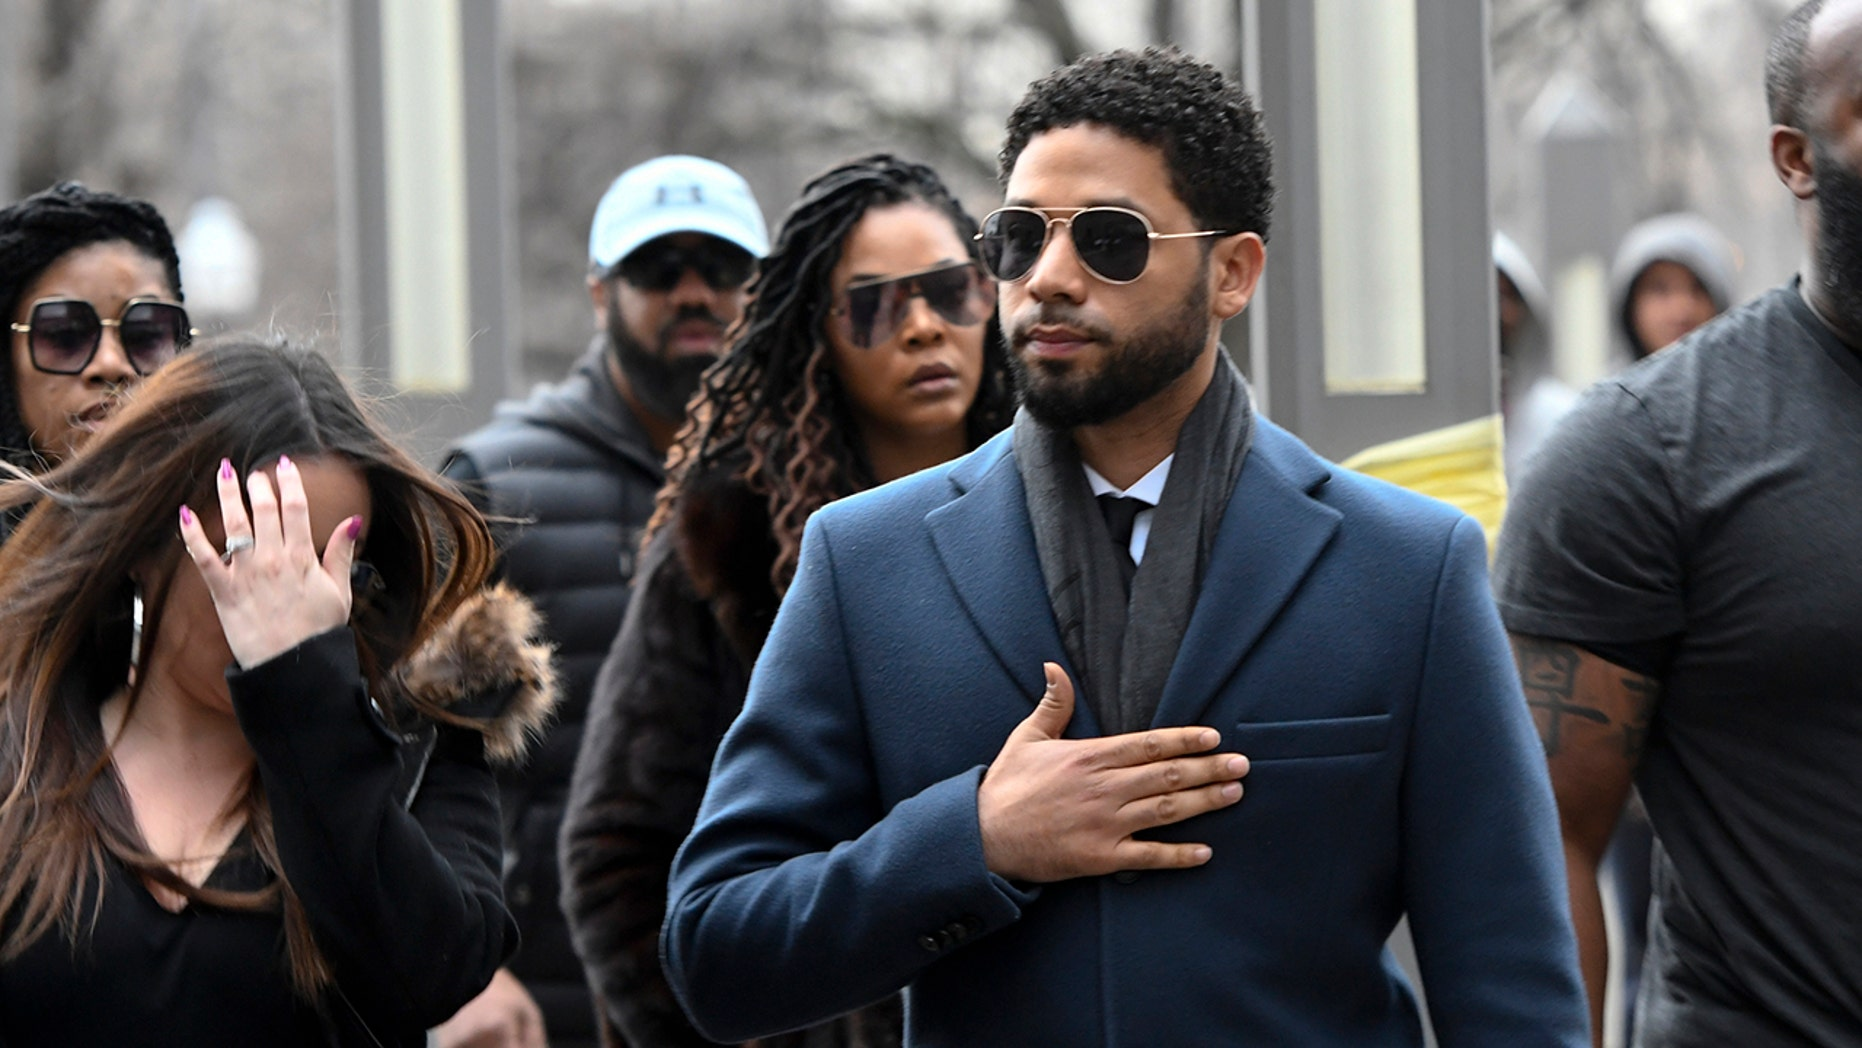 The moral of the case of Jussie Smollett is that another, well networked celebrity skater gets along without regret. (Associated Press)